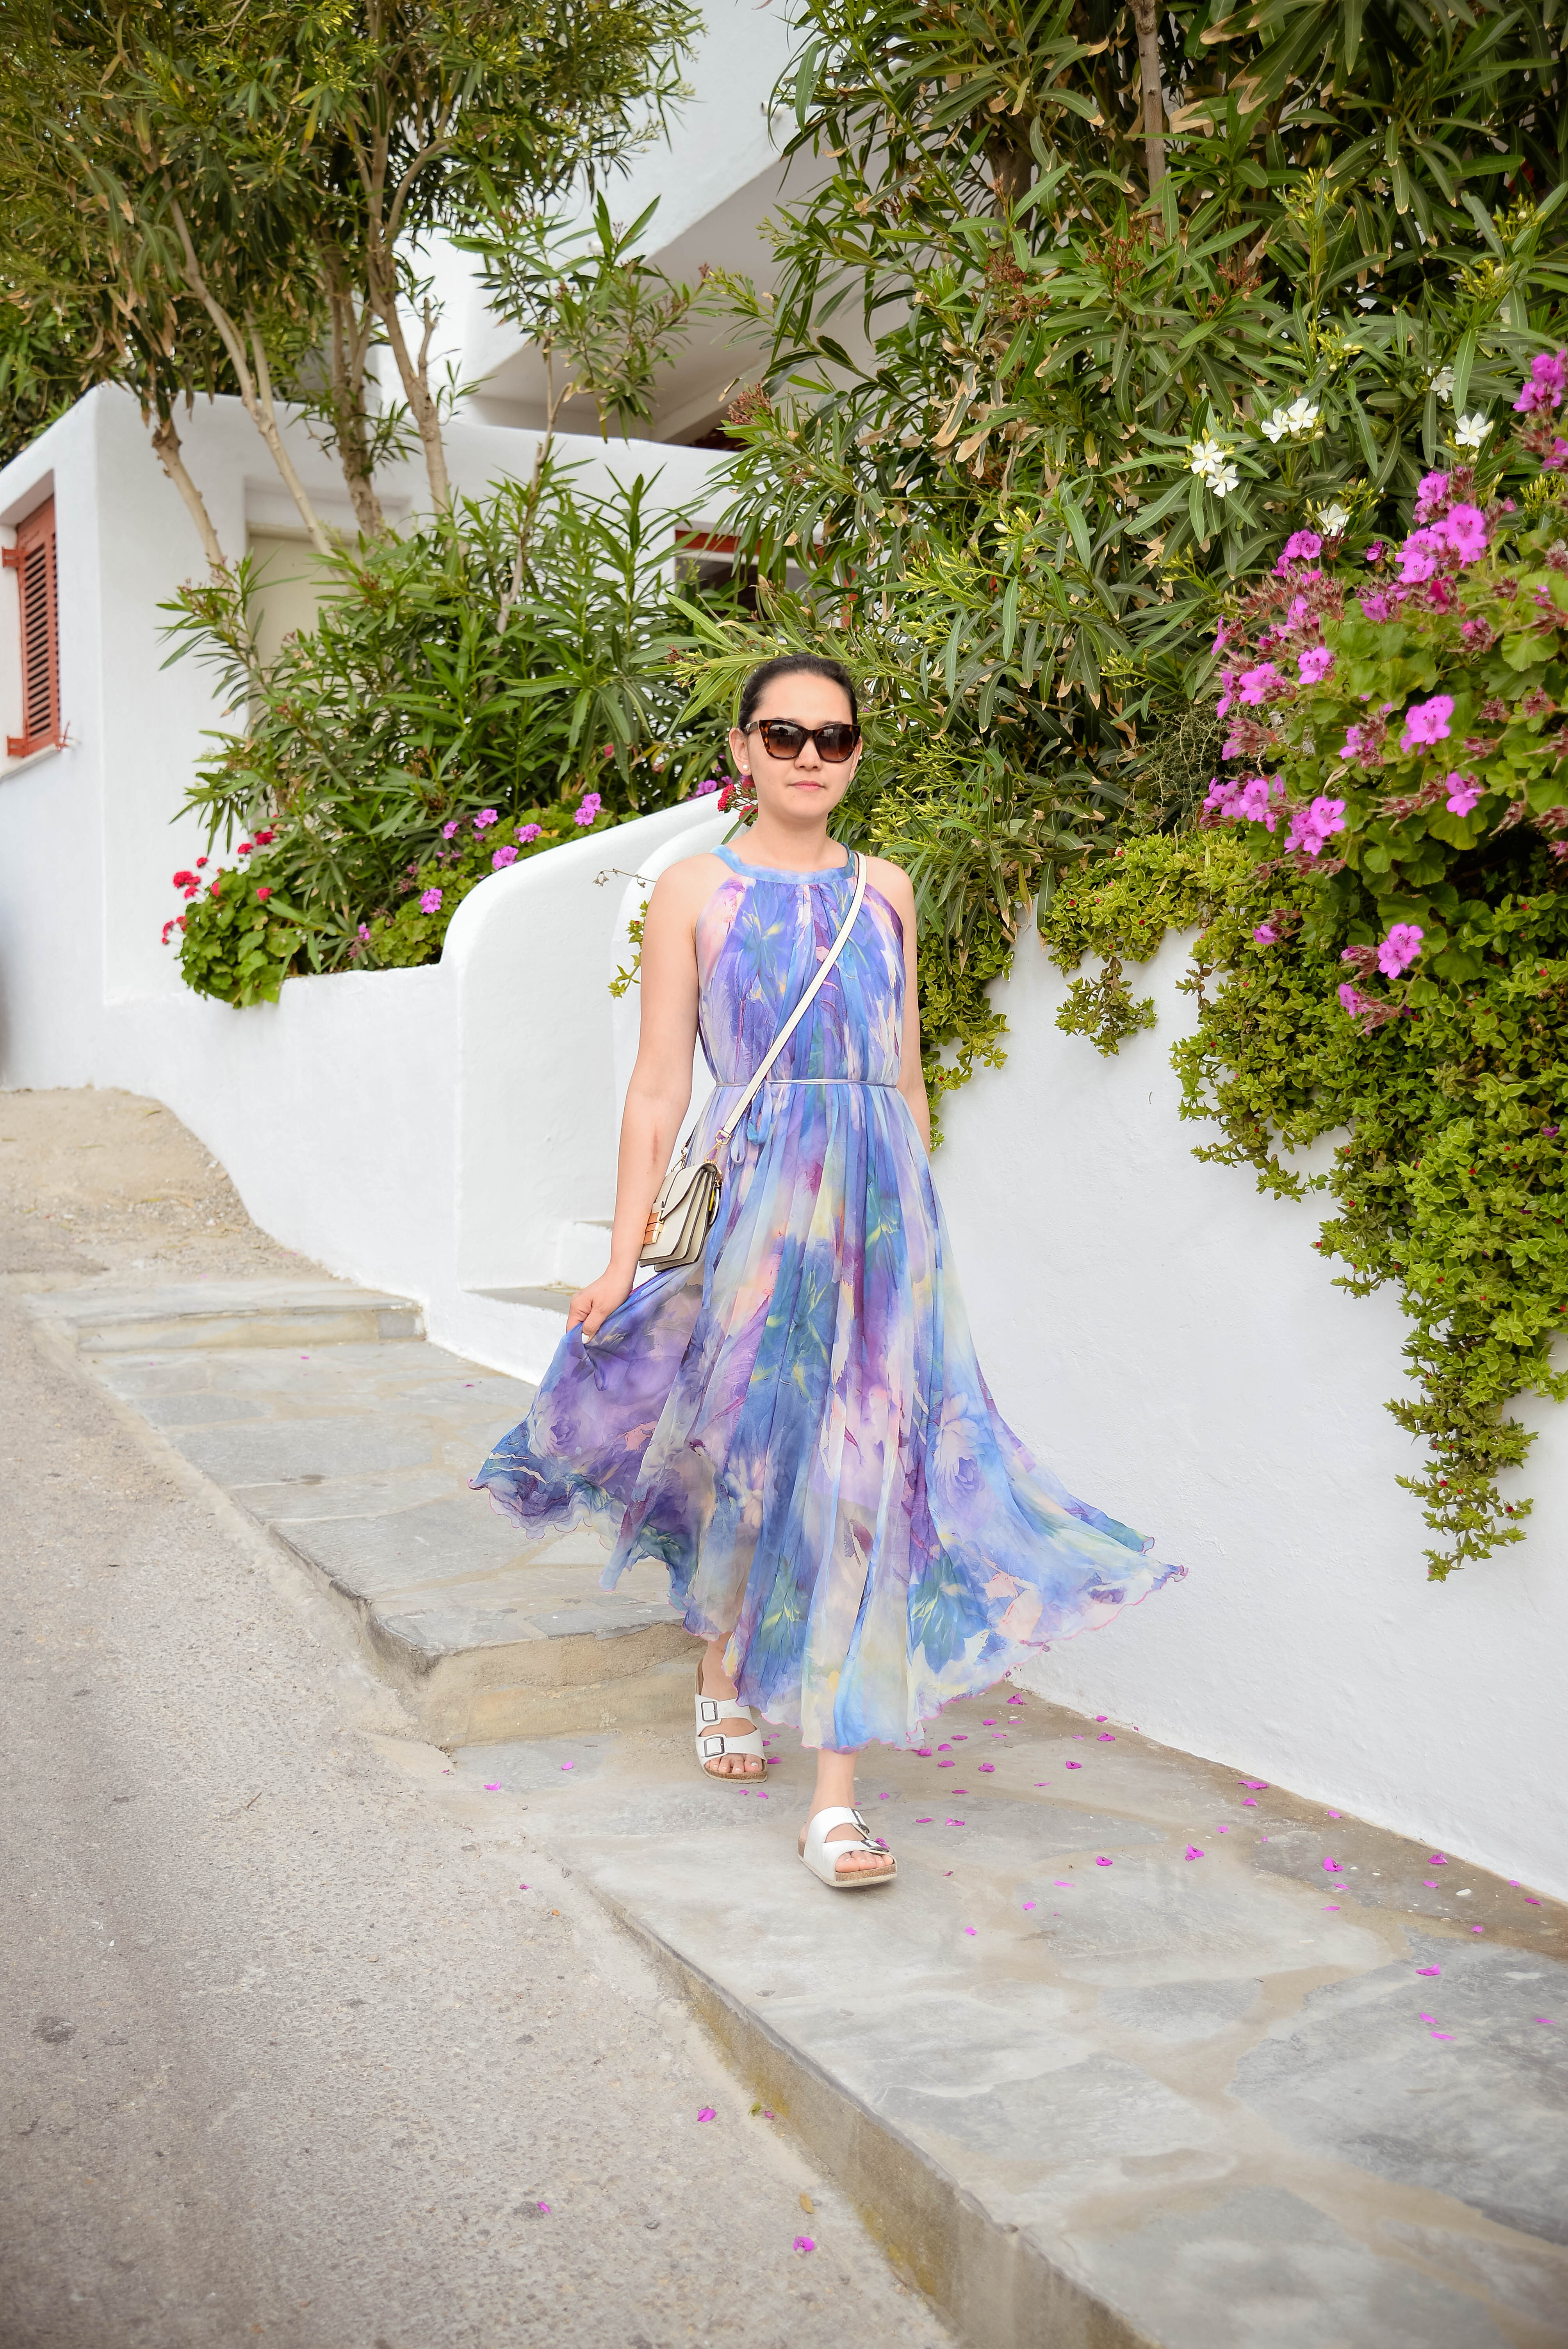 Beach Day in Mykonos with my Perfect All Day Maxi Dress